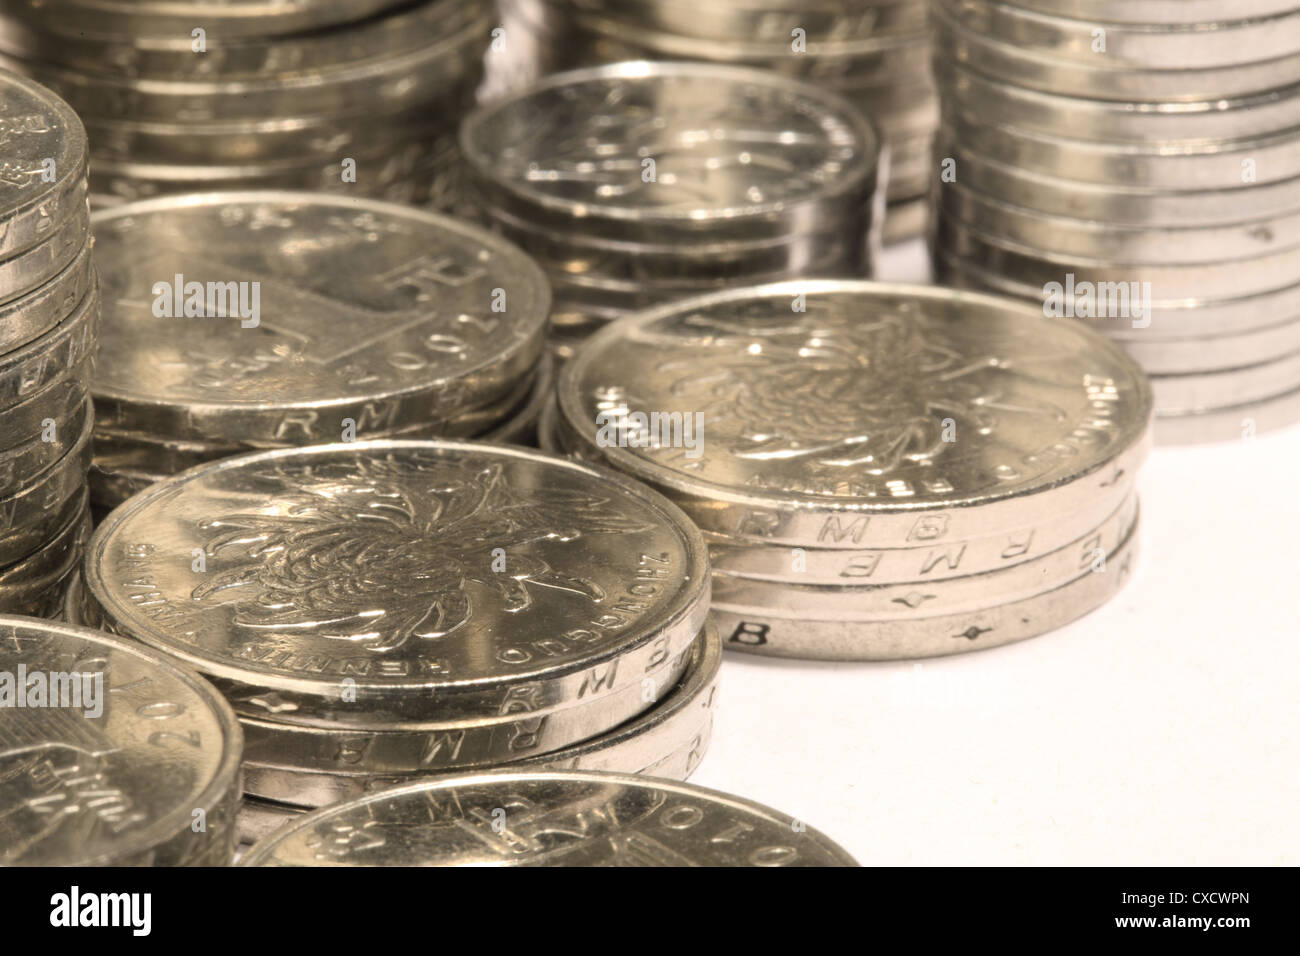 Chinese coin stacks - Stock Image